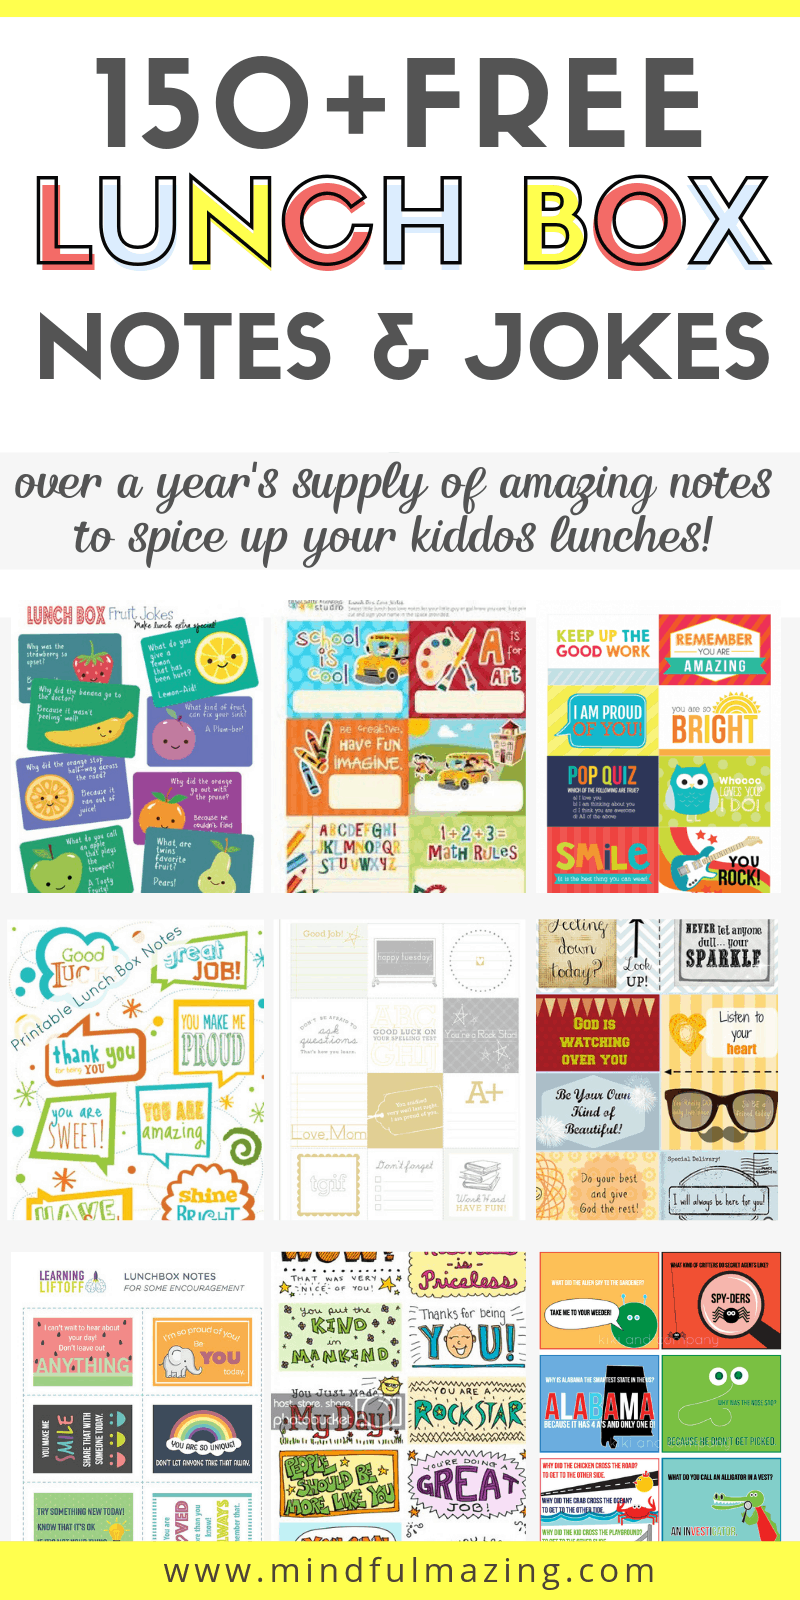 Lunch box notes for kids are a super cool way to remind your kiddo they are loved and that you are thinking about them while they are at school. This epic post includes the best of the best lunch box notes for kids from all over the web. Spice up lunches with these 150+ printable lunch box notes and lunch box jokes for back to school (includes lunch box notes for kindergarteners) guaranteed to make your kids feel loved and special. #lunchboxnotesforkindergarteners #lunchboxnotesforkid